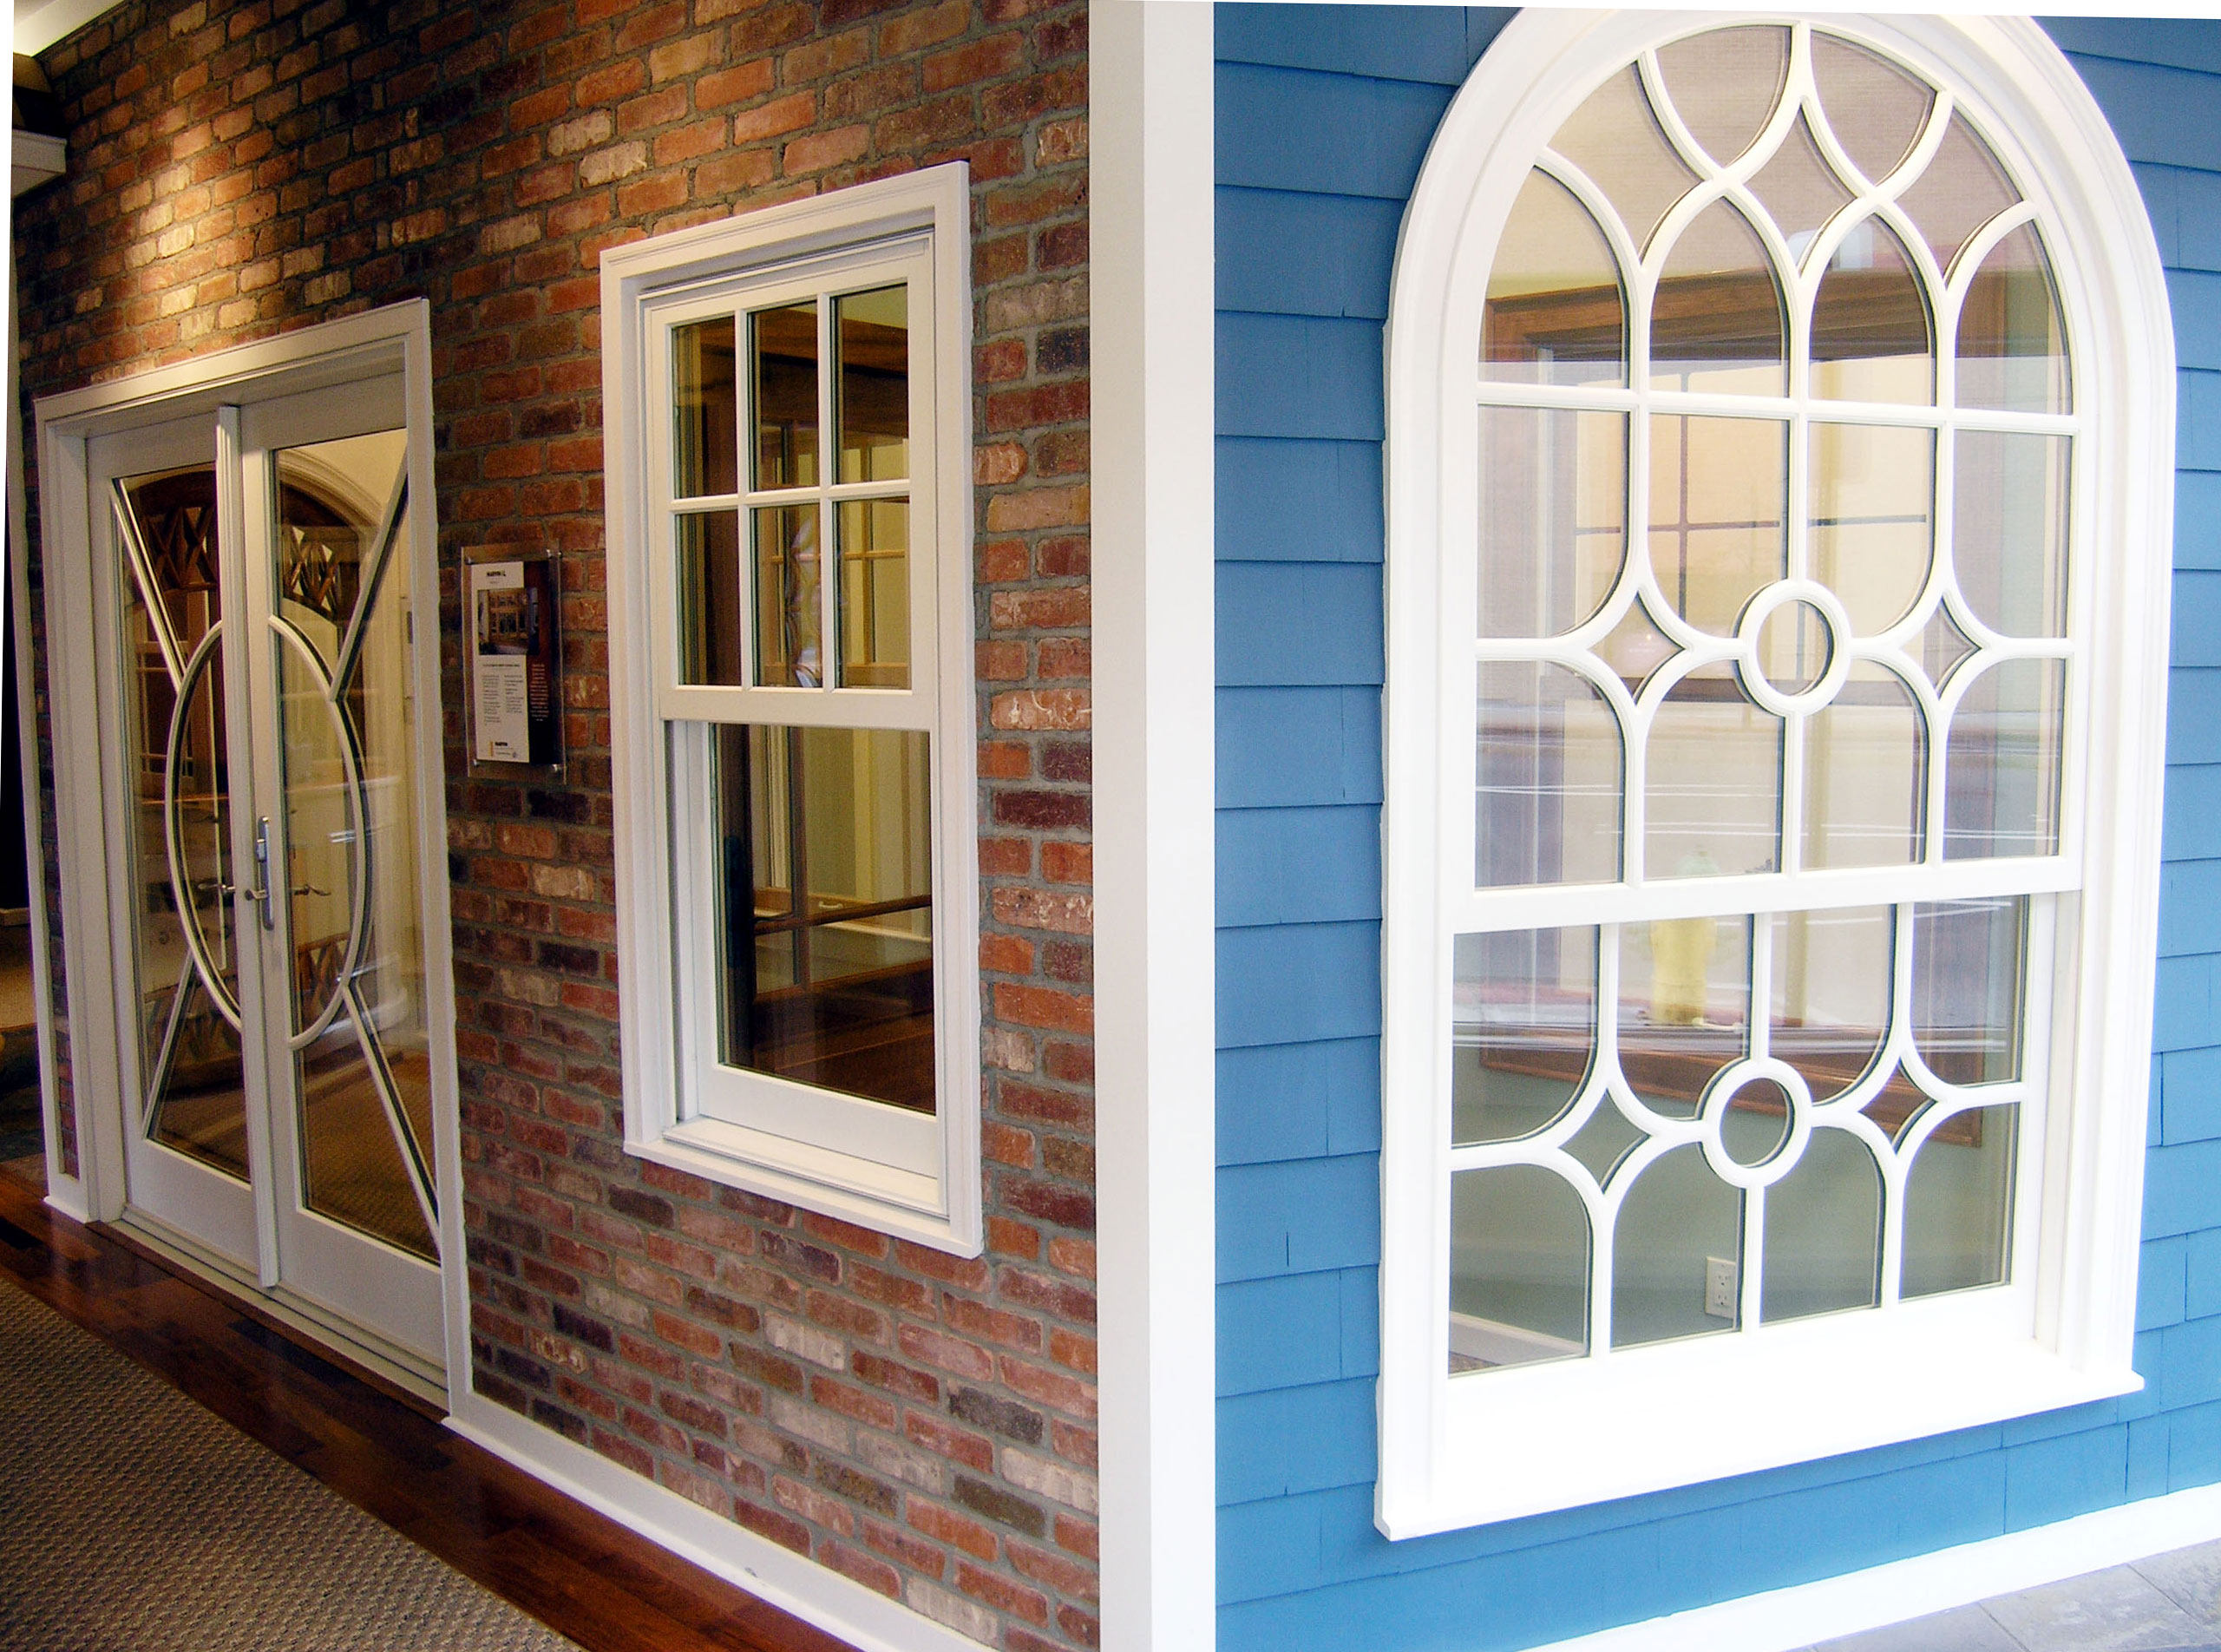 About us elmsford ny authentic window design for Top window design